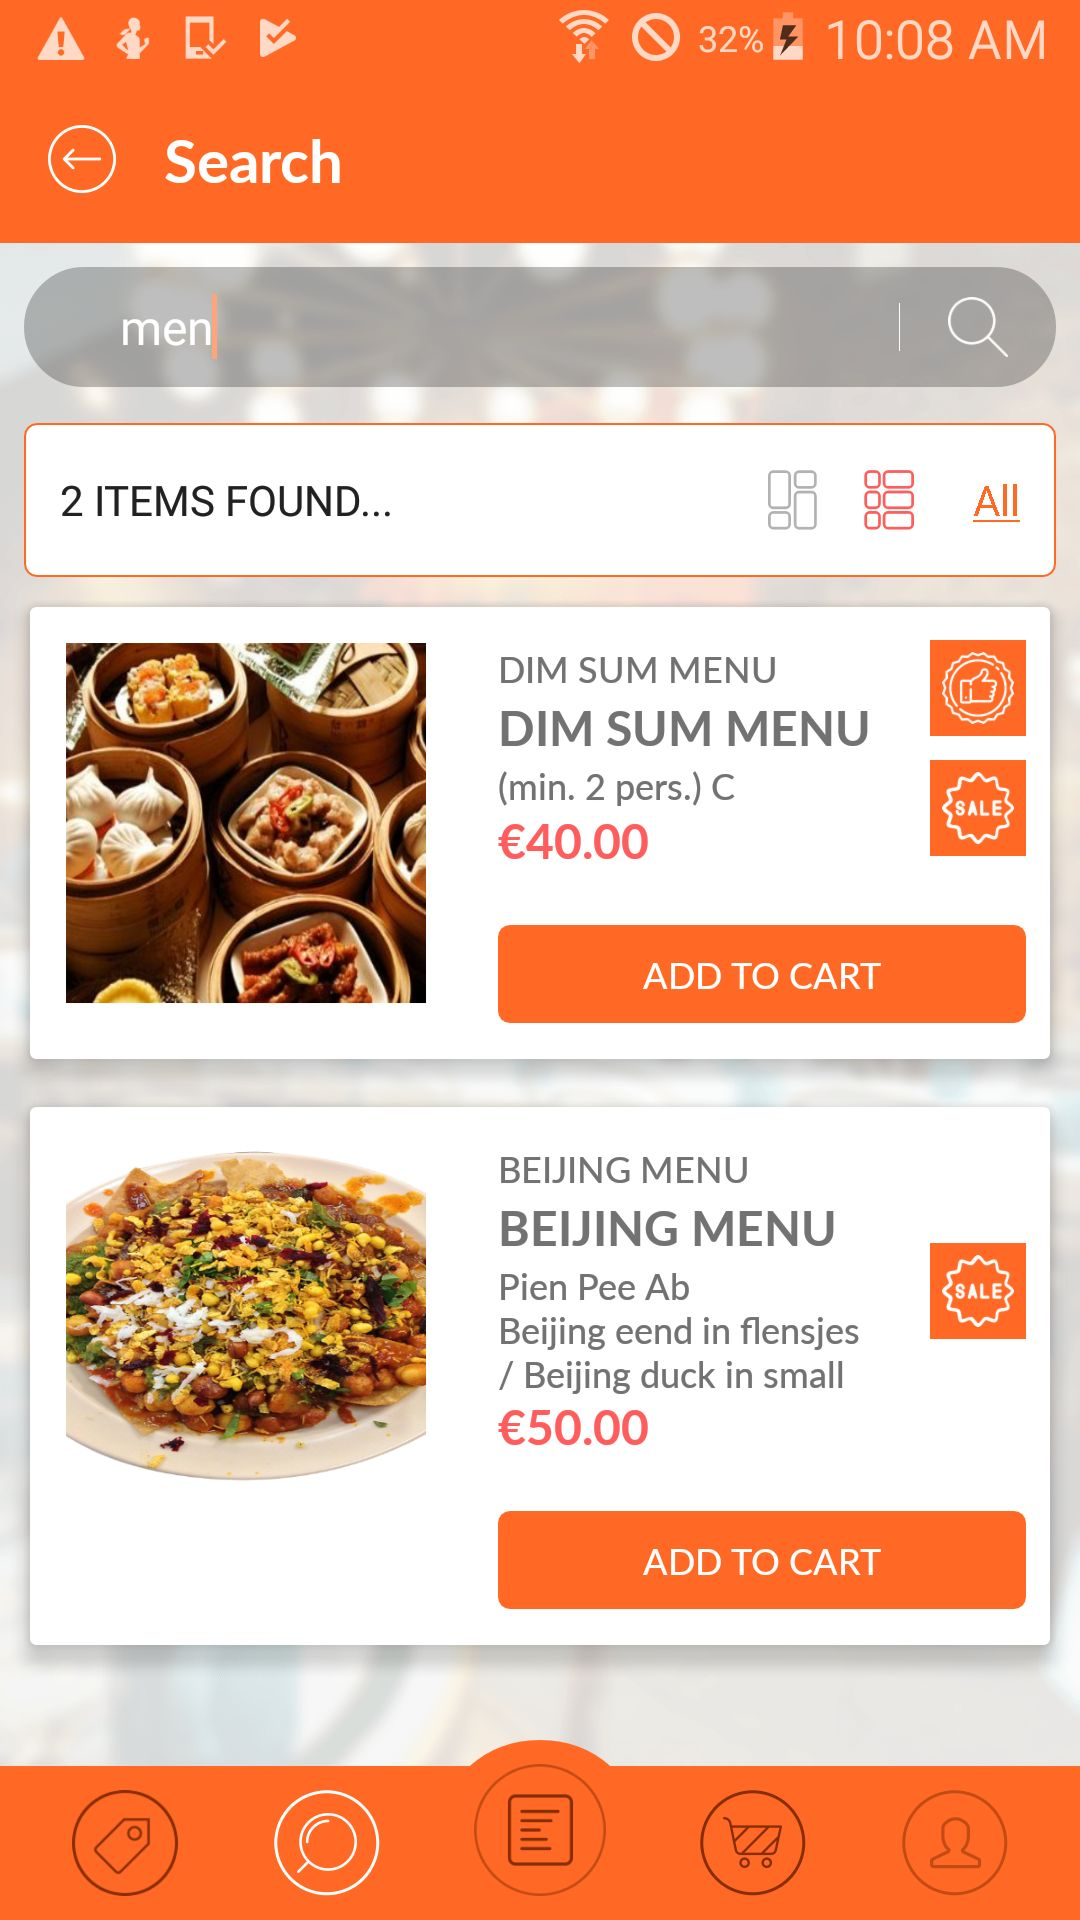 Restaurant Fastfood - Android App Source Code Screenshot 4